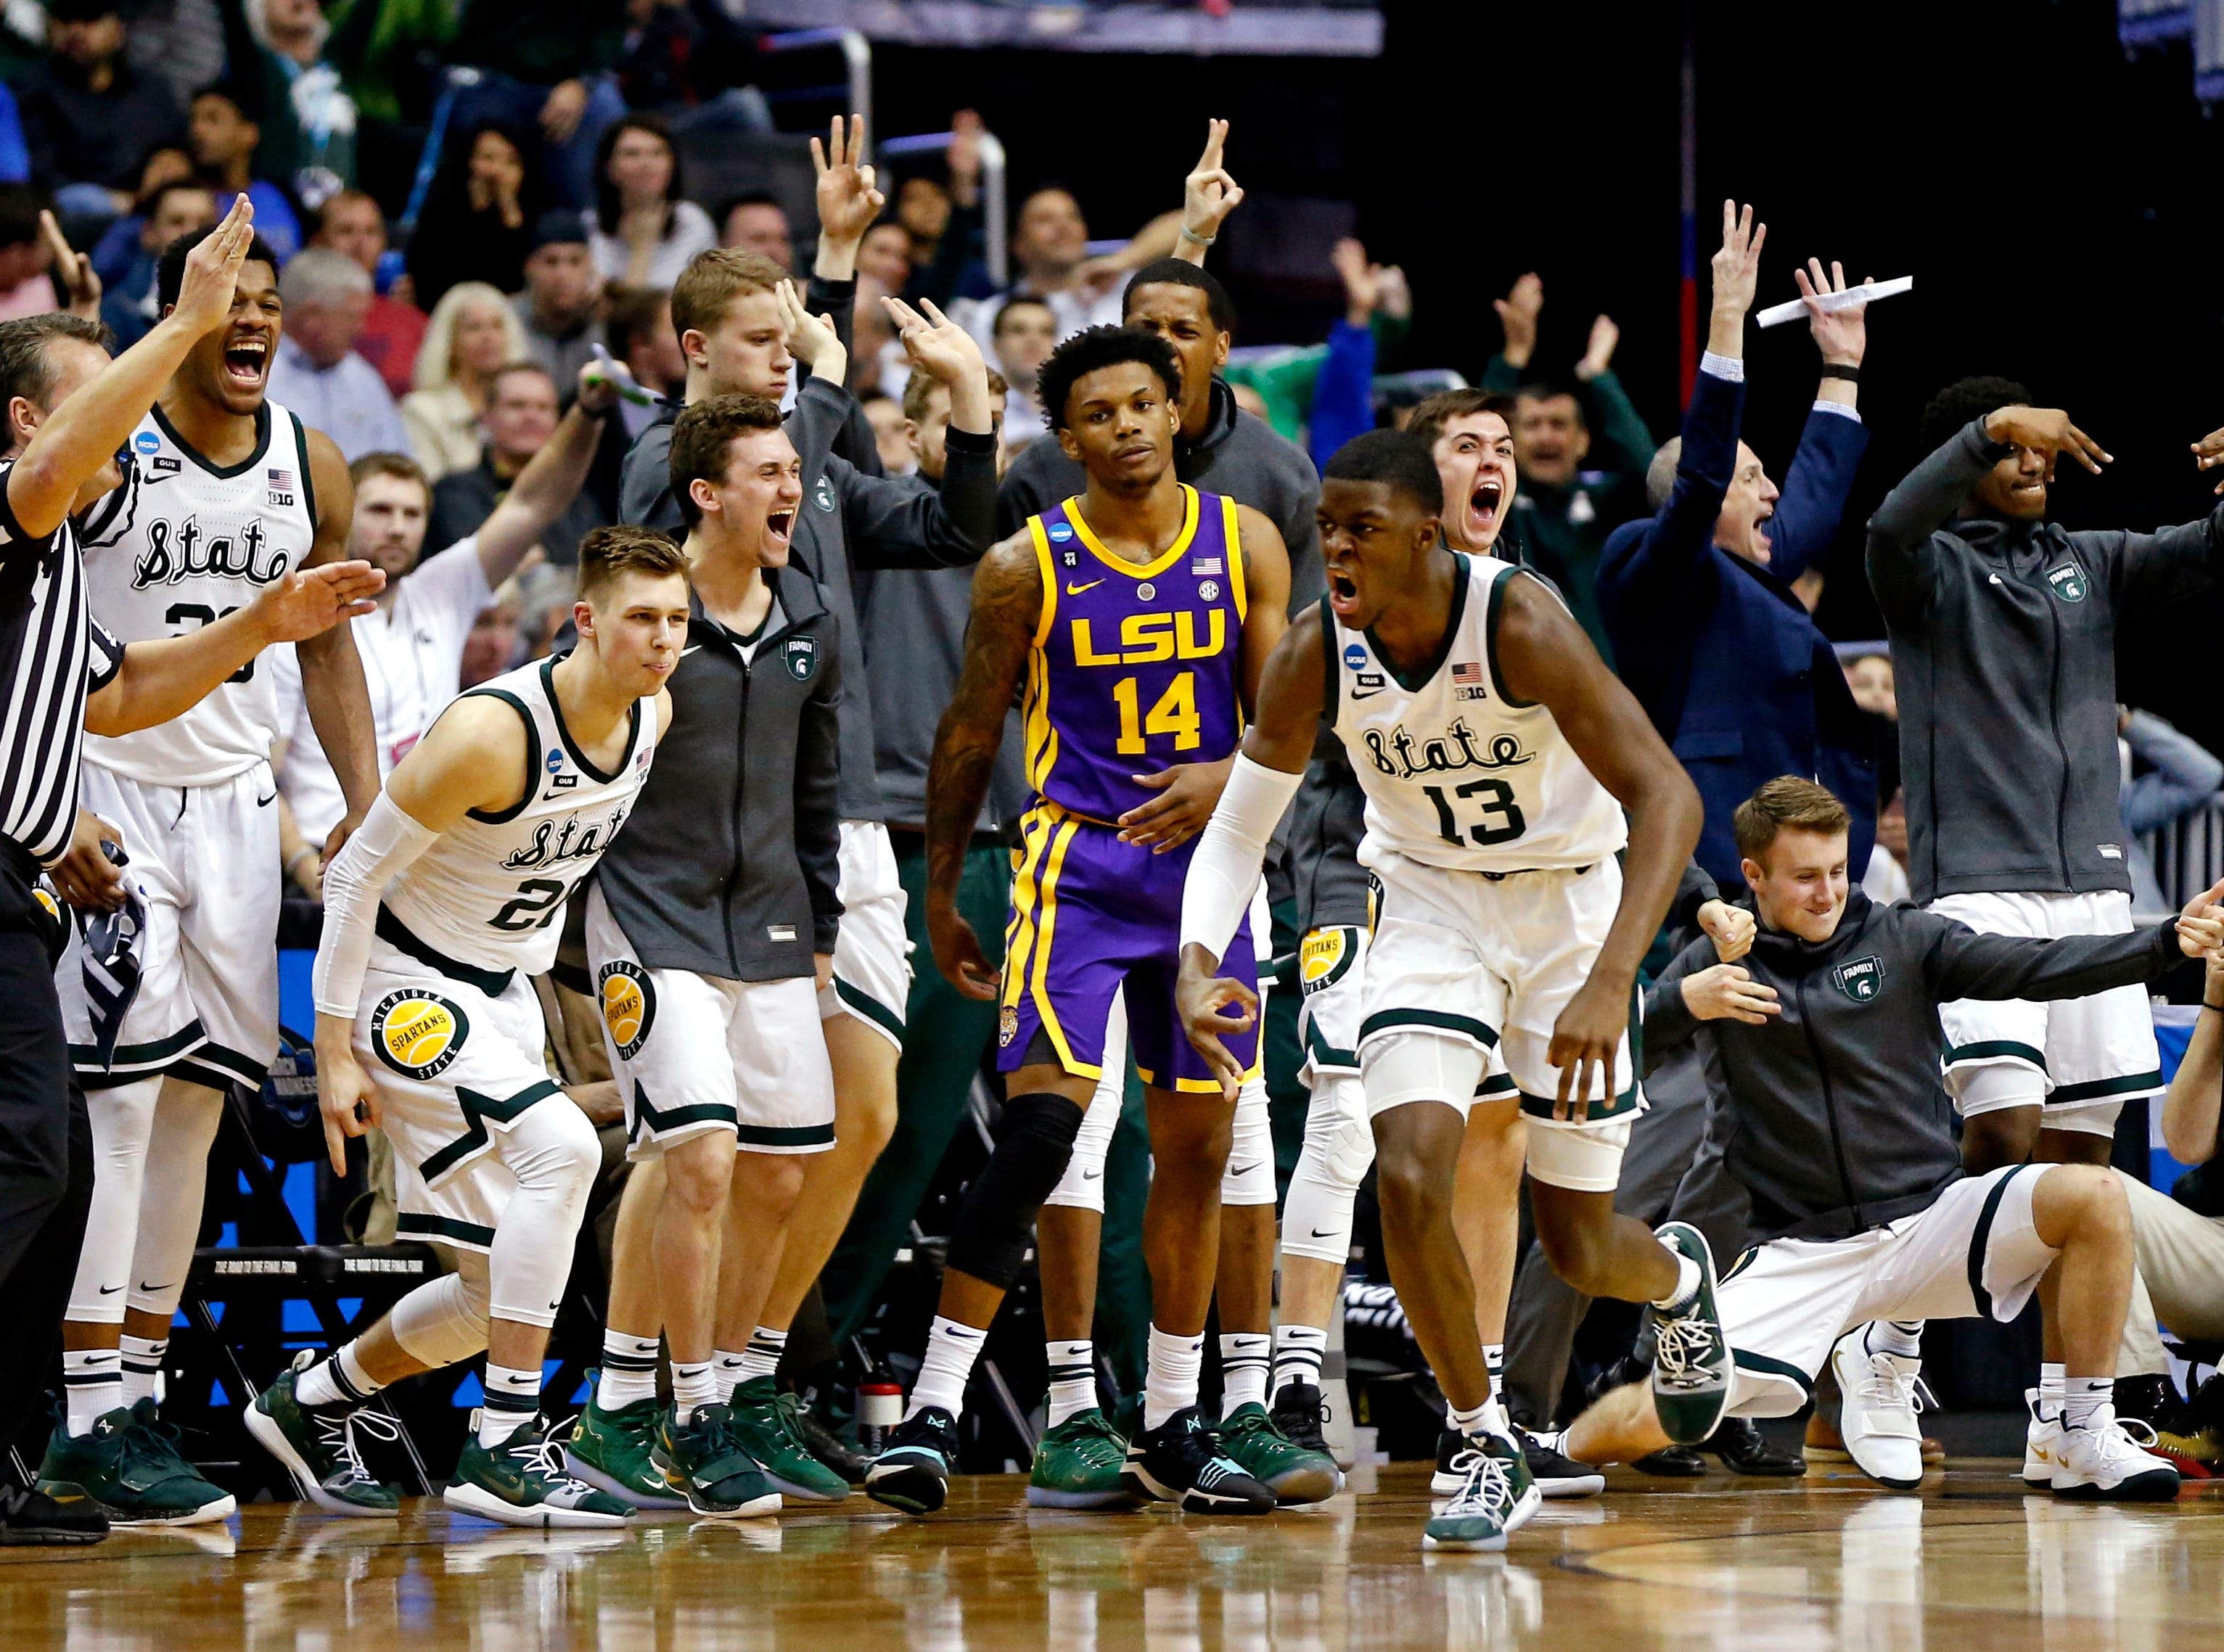 Mar 29, 2019; Washington, DC, USA; Michigan State Spartans forward Gabe Brown (13) celebrates after a basket during the second half against the LSU Tigers in the semifinals of the east regional of the 2019 NCAA Tournament at Capital One Arena. Mandatory Credit: Amber Searls-USA TODAY Sports